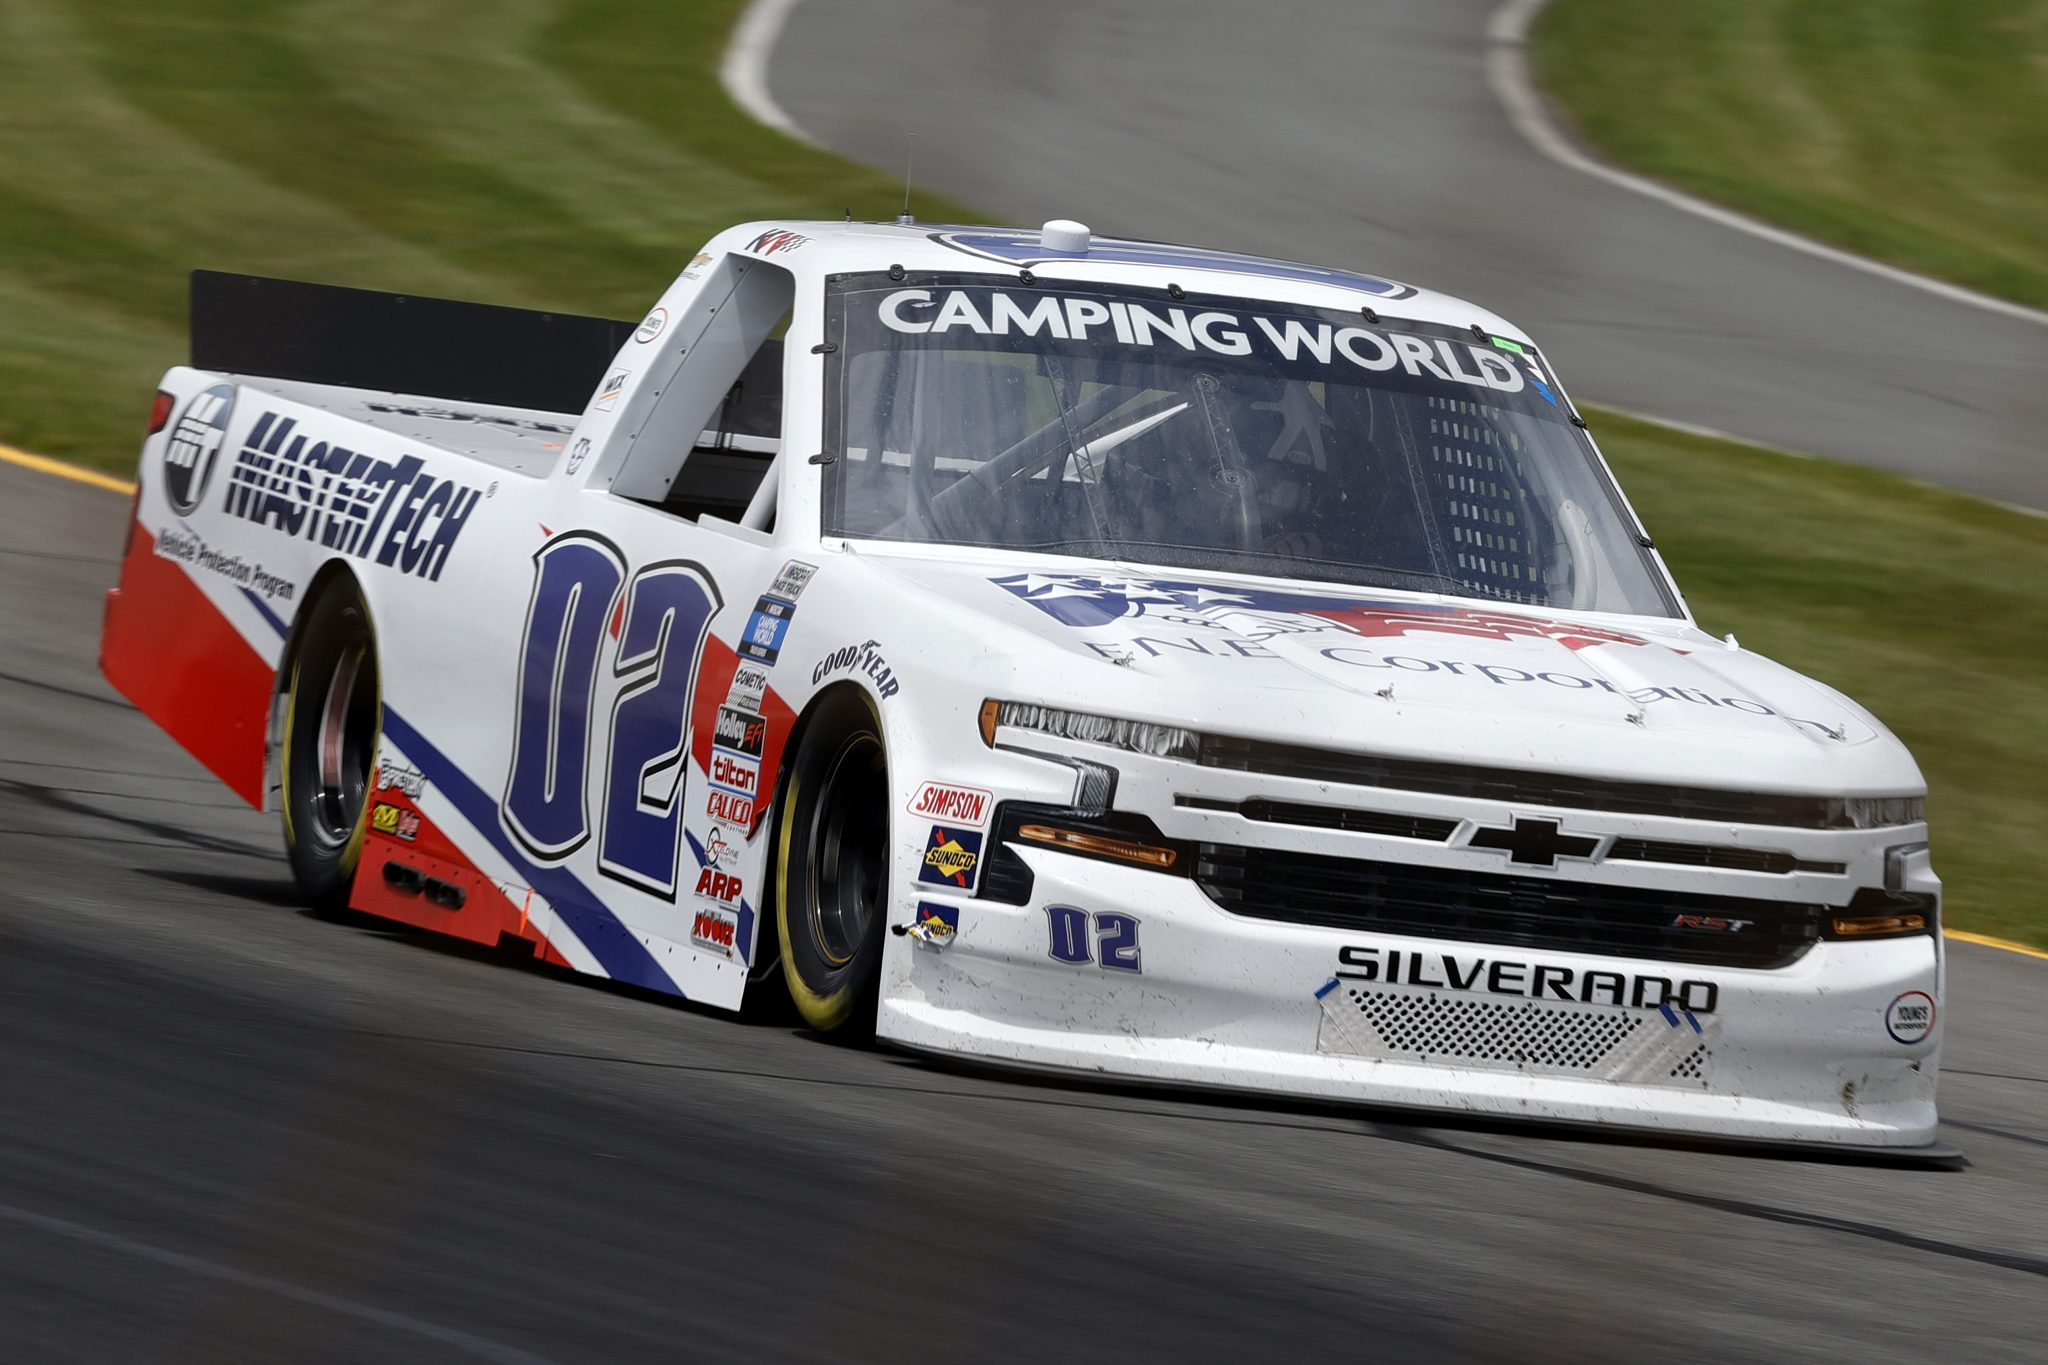 LONG POND, PENNSYLVANIA - JUNE 26: Kris Wright, driver of the #02 MasterTech Chevrolet, drives during the NASCAR Camping World Truck Series CRC Brakleen 150 at Pocono Raceway on June 26, 2021 in Long Pond, Pennsylvania. (Photo by Tim Nwachukwu/Getty Images) | Getty Images